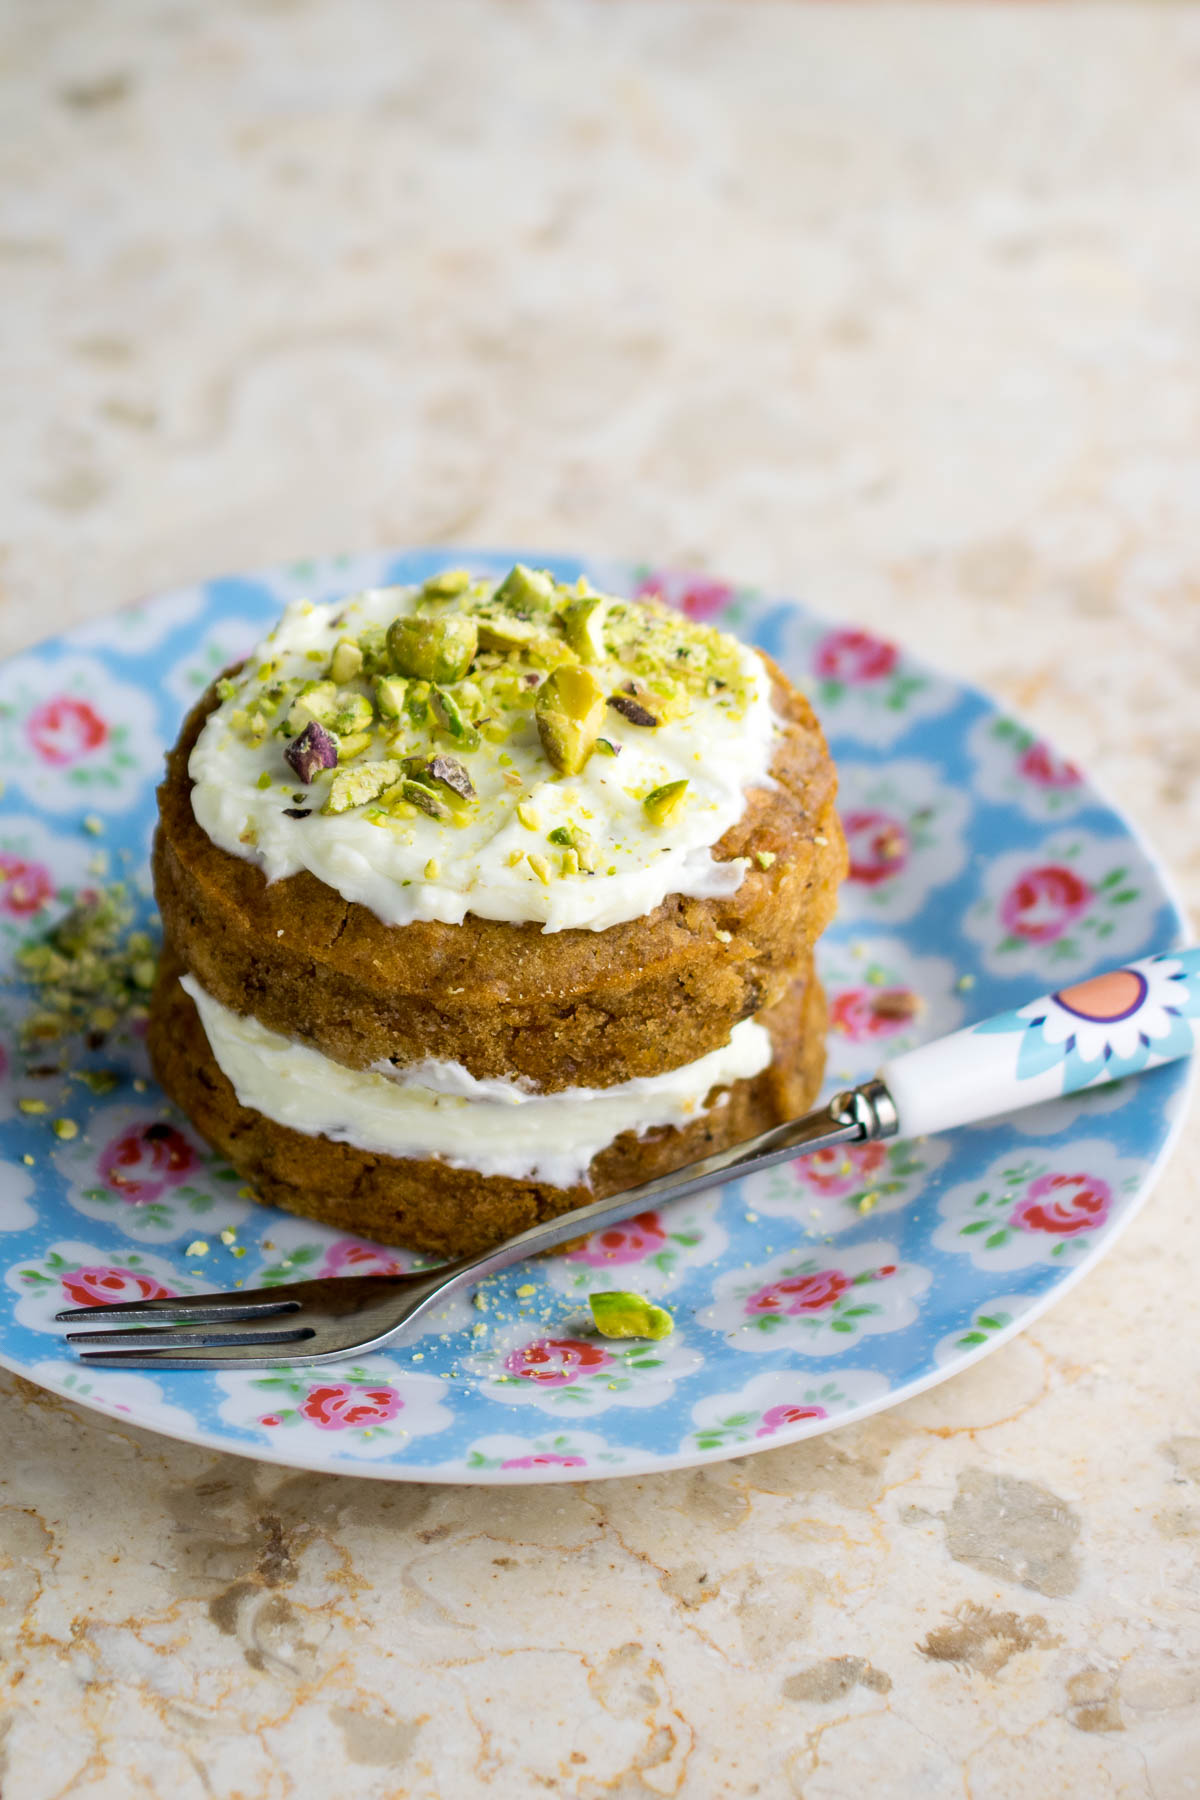 A single serving carrot cake for one